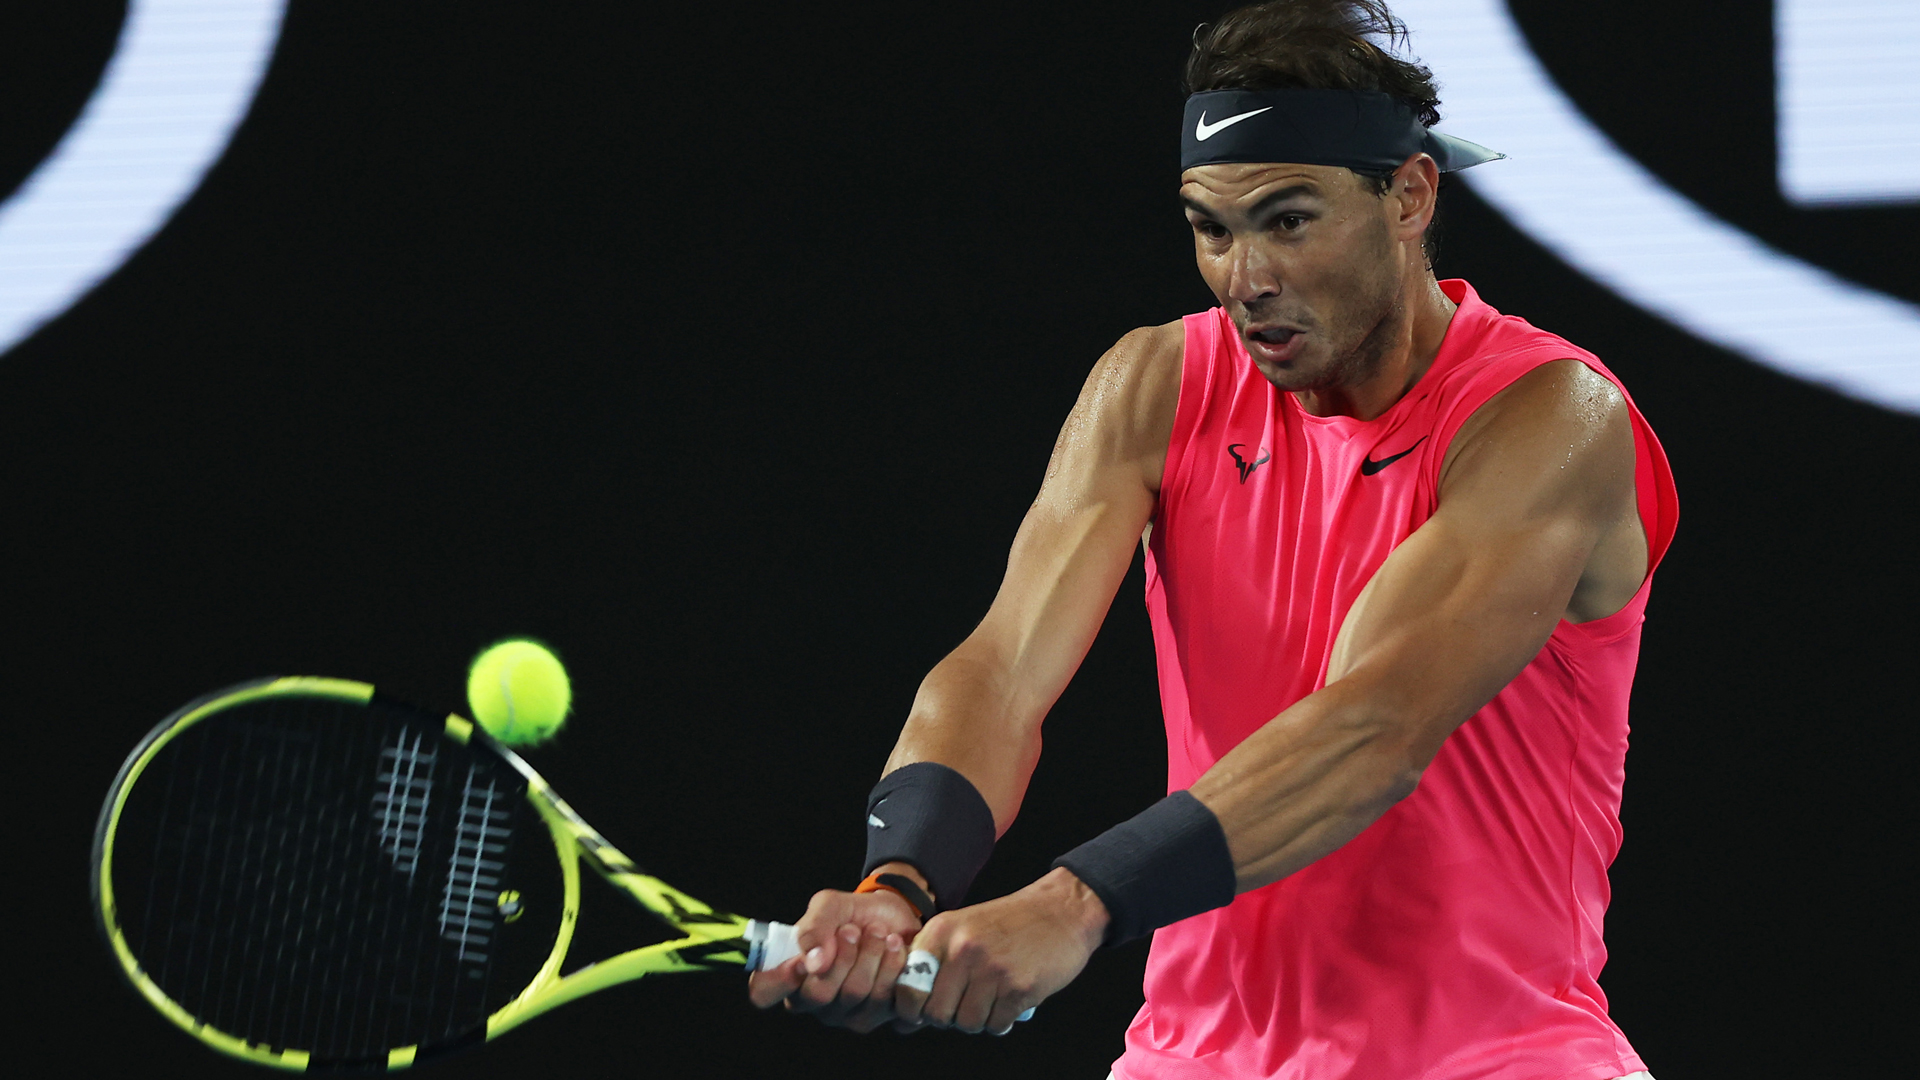 Australian Open 2020: Rafael Nadal results and form ahead of third-round match with Pablo Carreno Busta